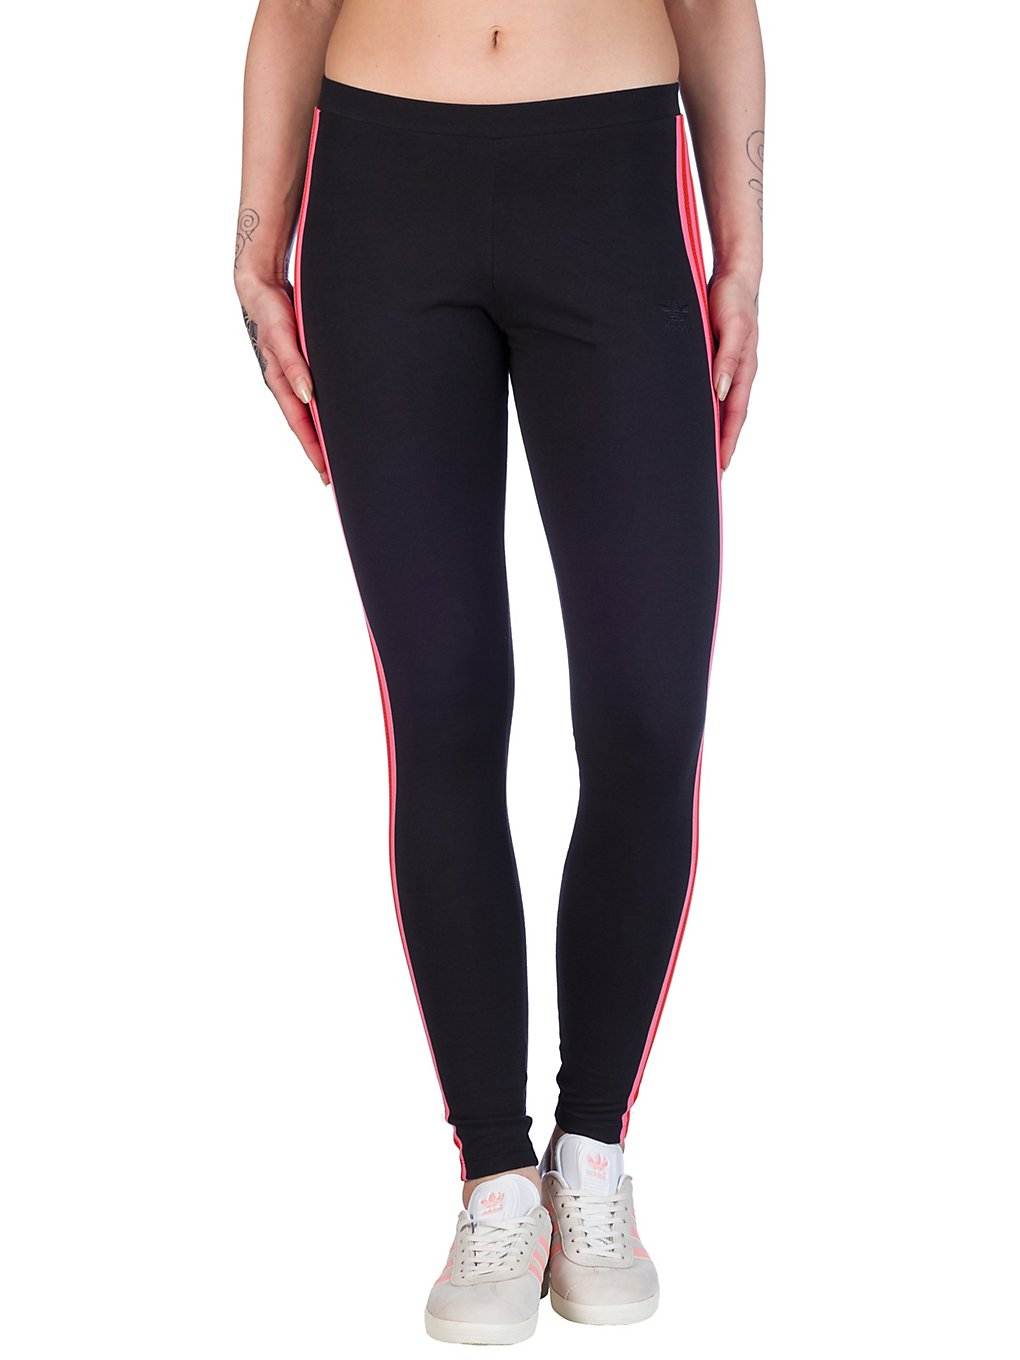 Image of adidas Originals Clrdo Mesh Legging Pants